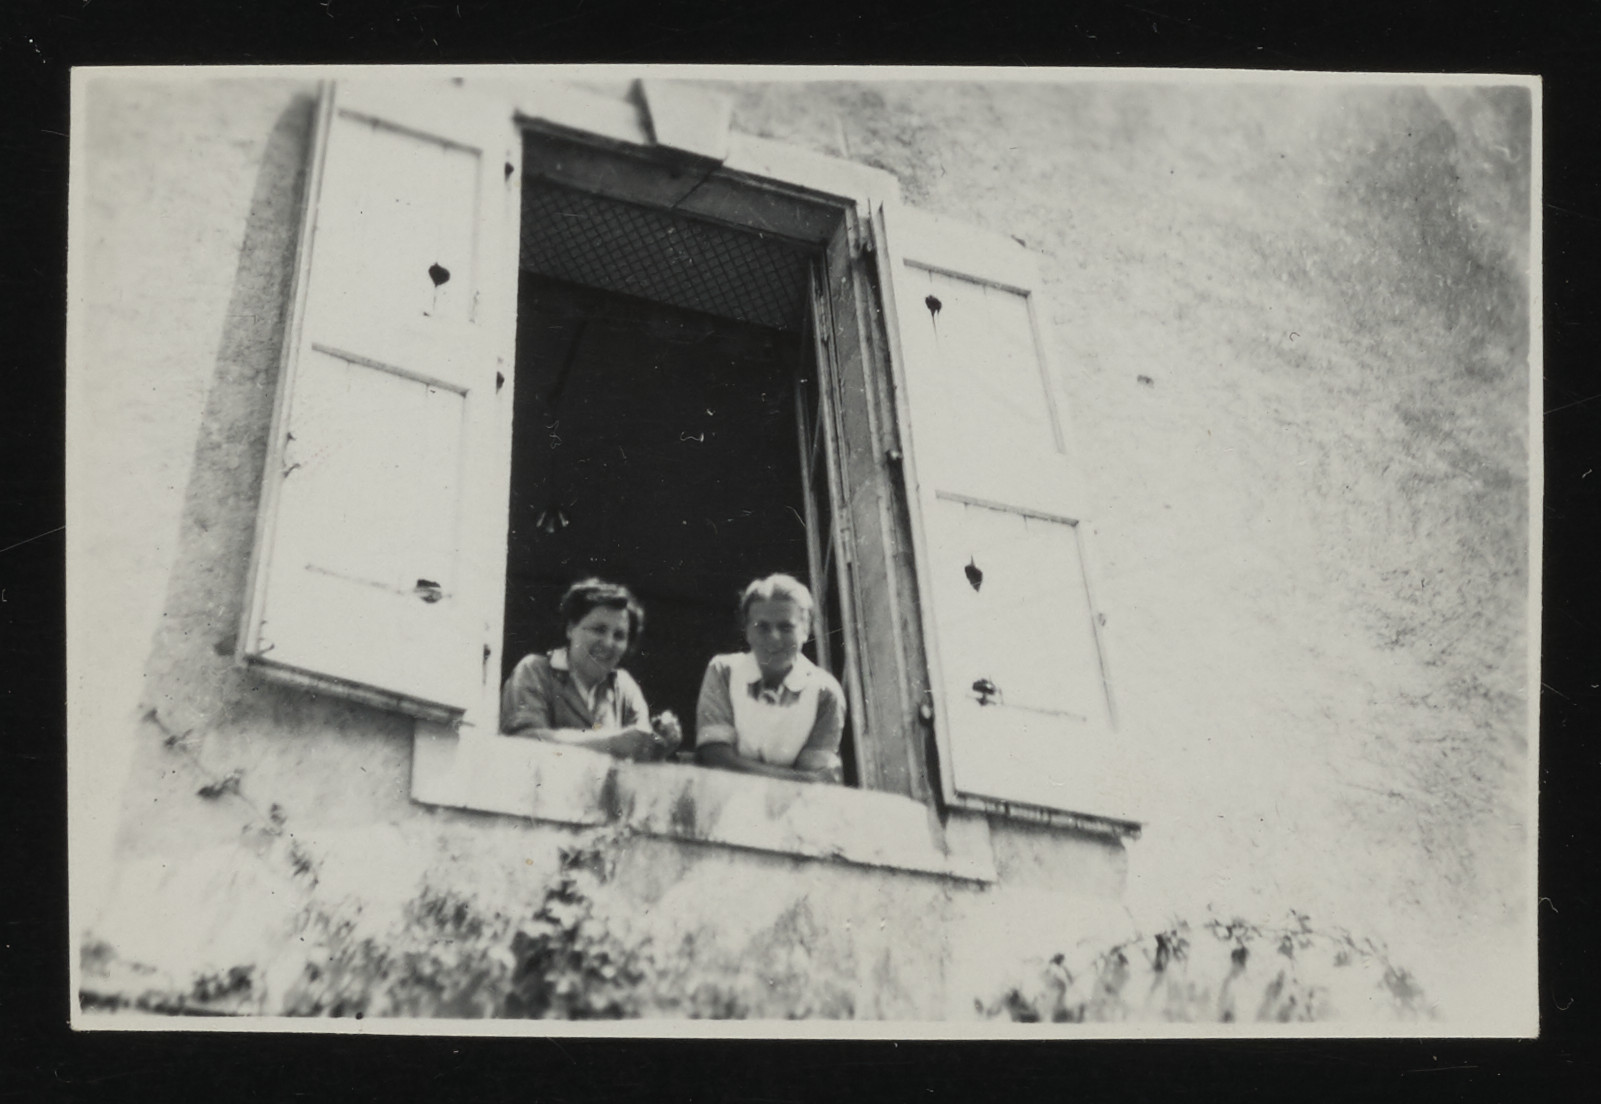 Flora Schlesinger (left) and Roesli Naef (right) lean out a window in the La Hille children's home.